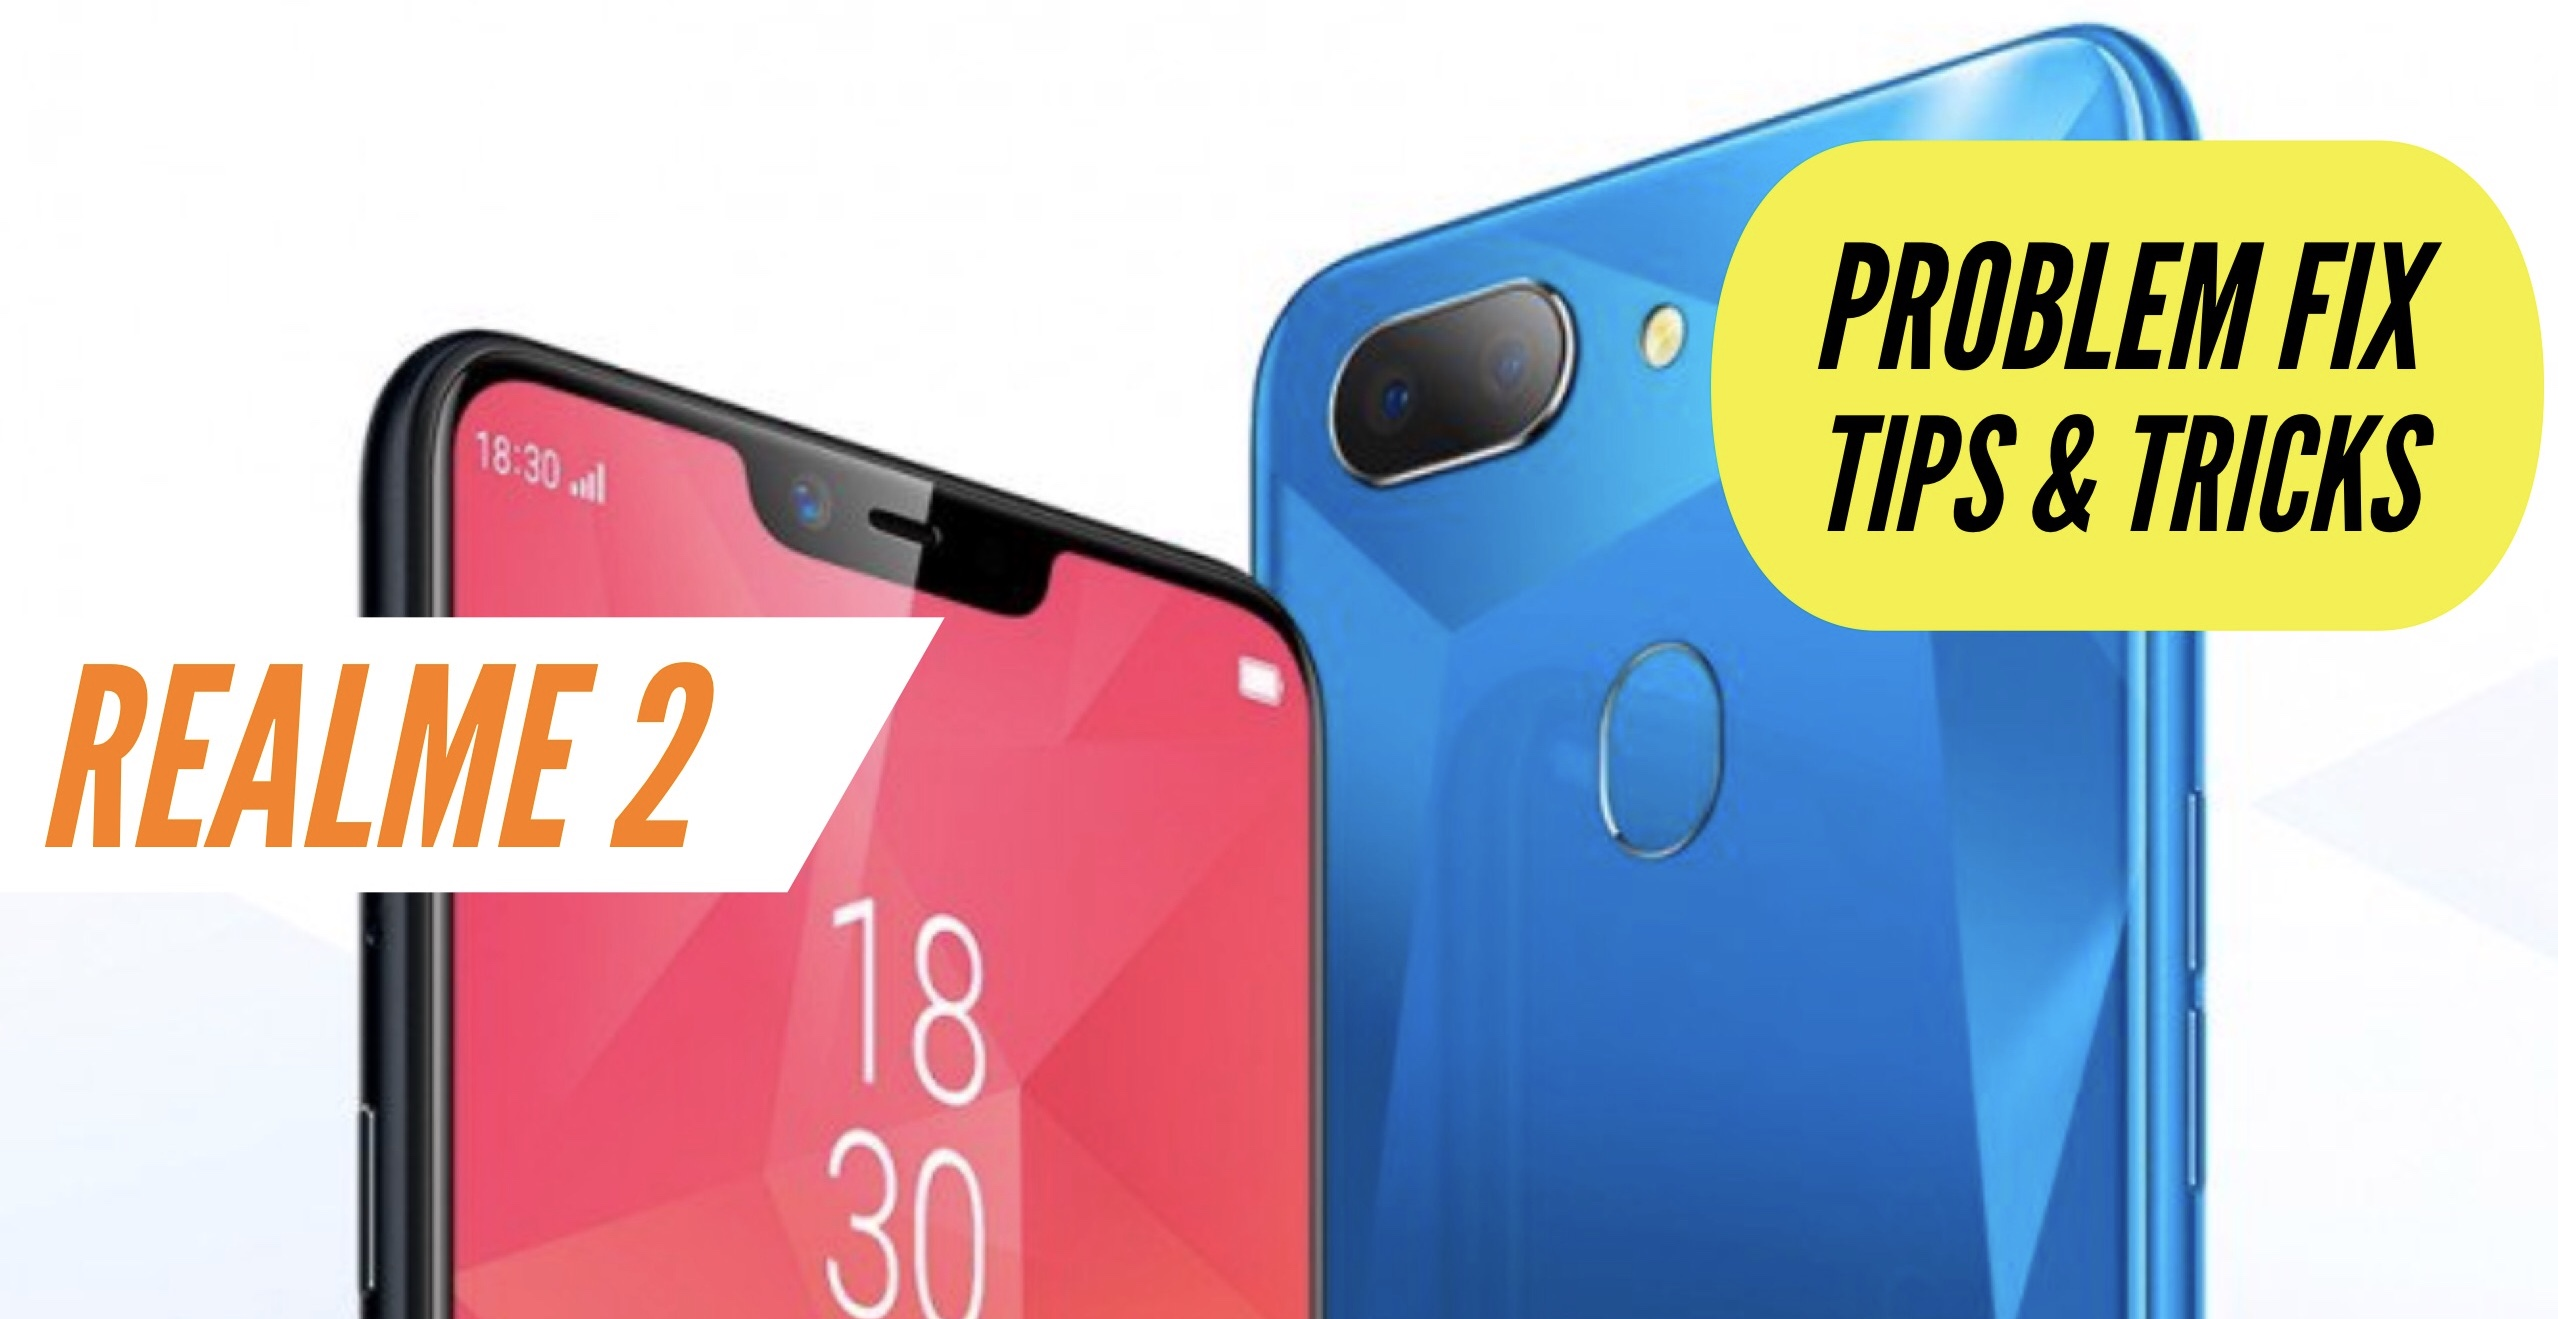 Realme 2 Most Common Problems & Issues + Solution Fix - TIPS